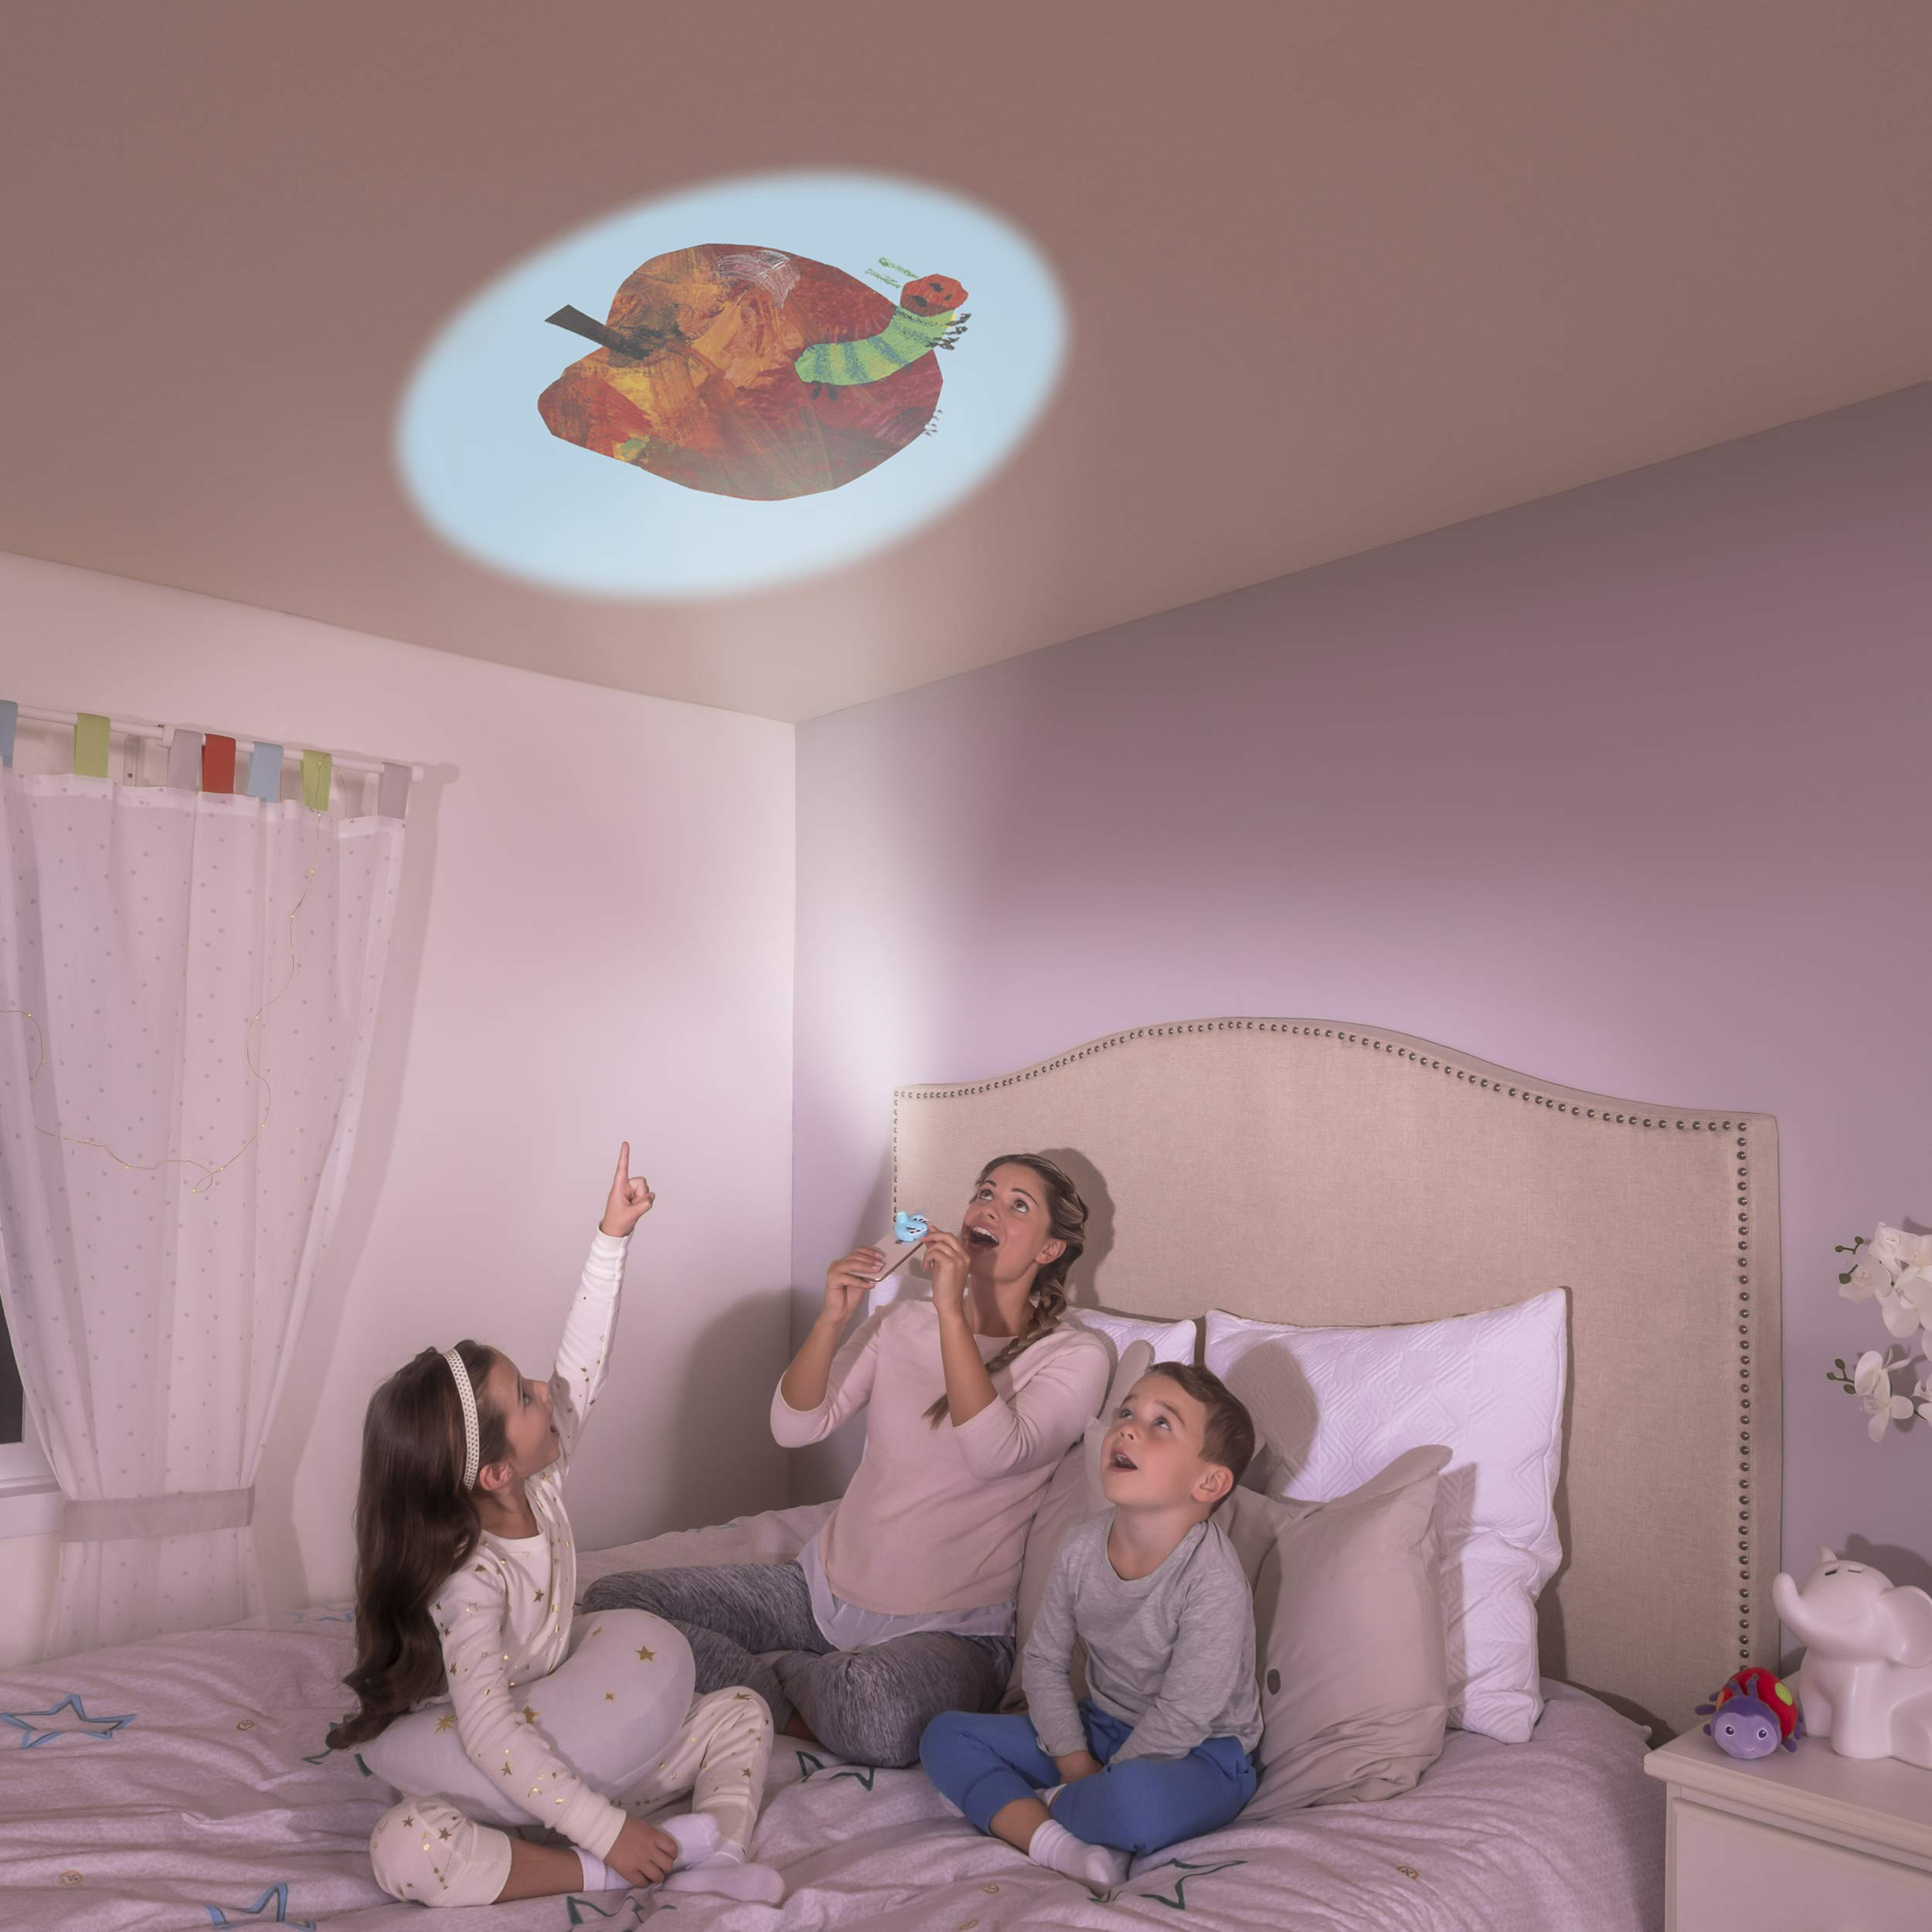 Moonlite - Eric Carle Junior Starter Pack, Storybook Projector for Smartphones with 2 Story Reels, For Ages 1 and Up by Moonlite (Image #2)